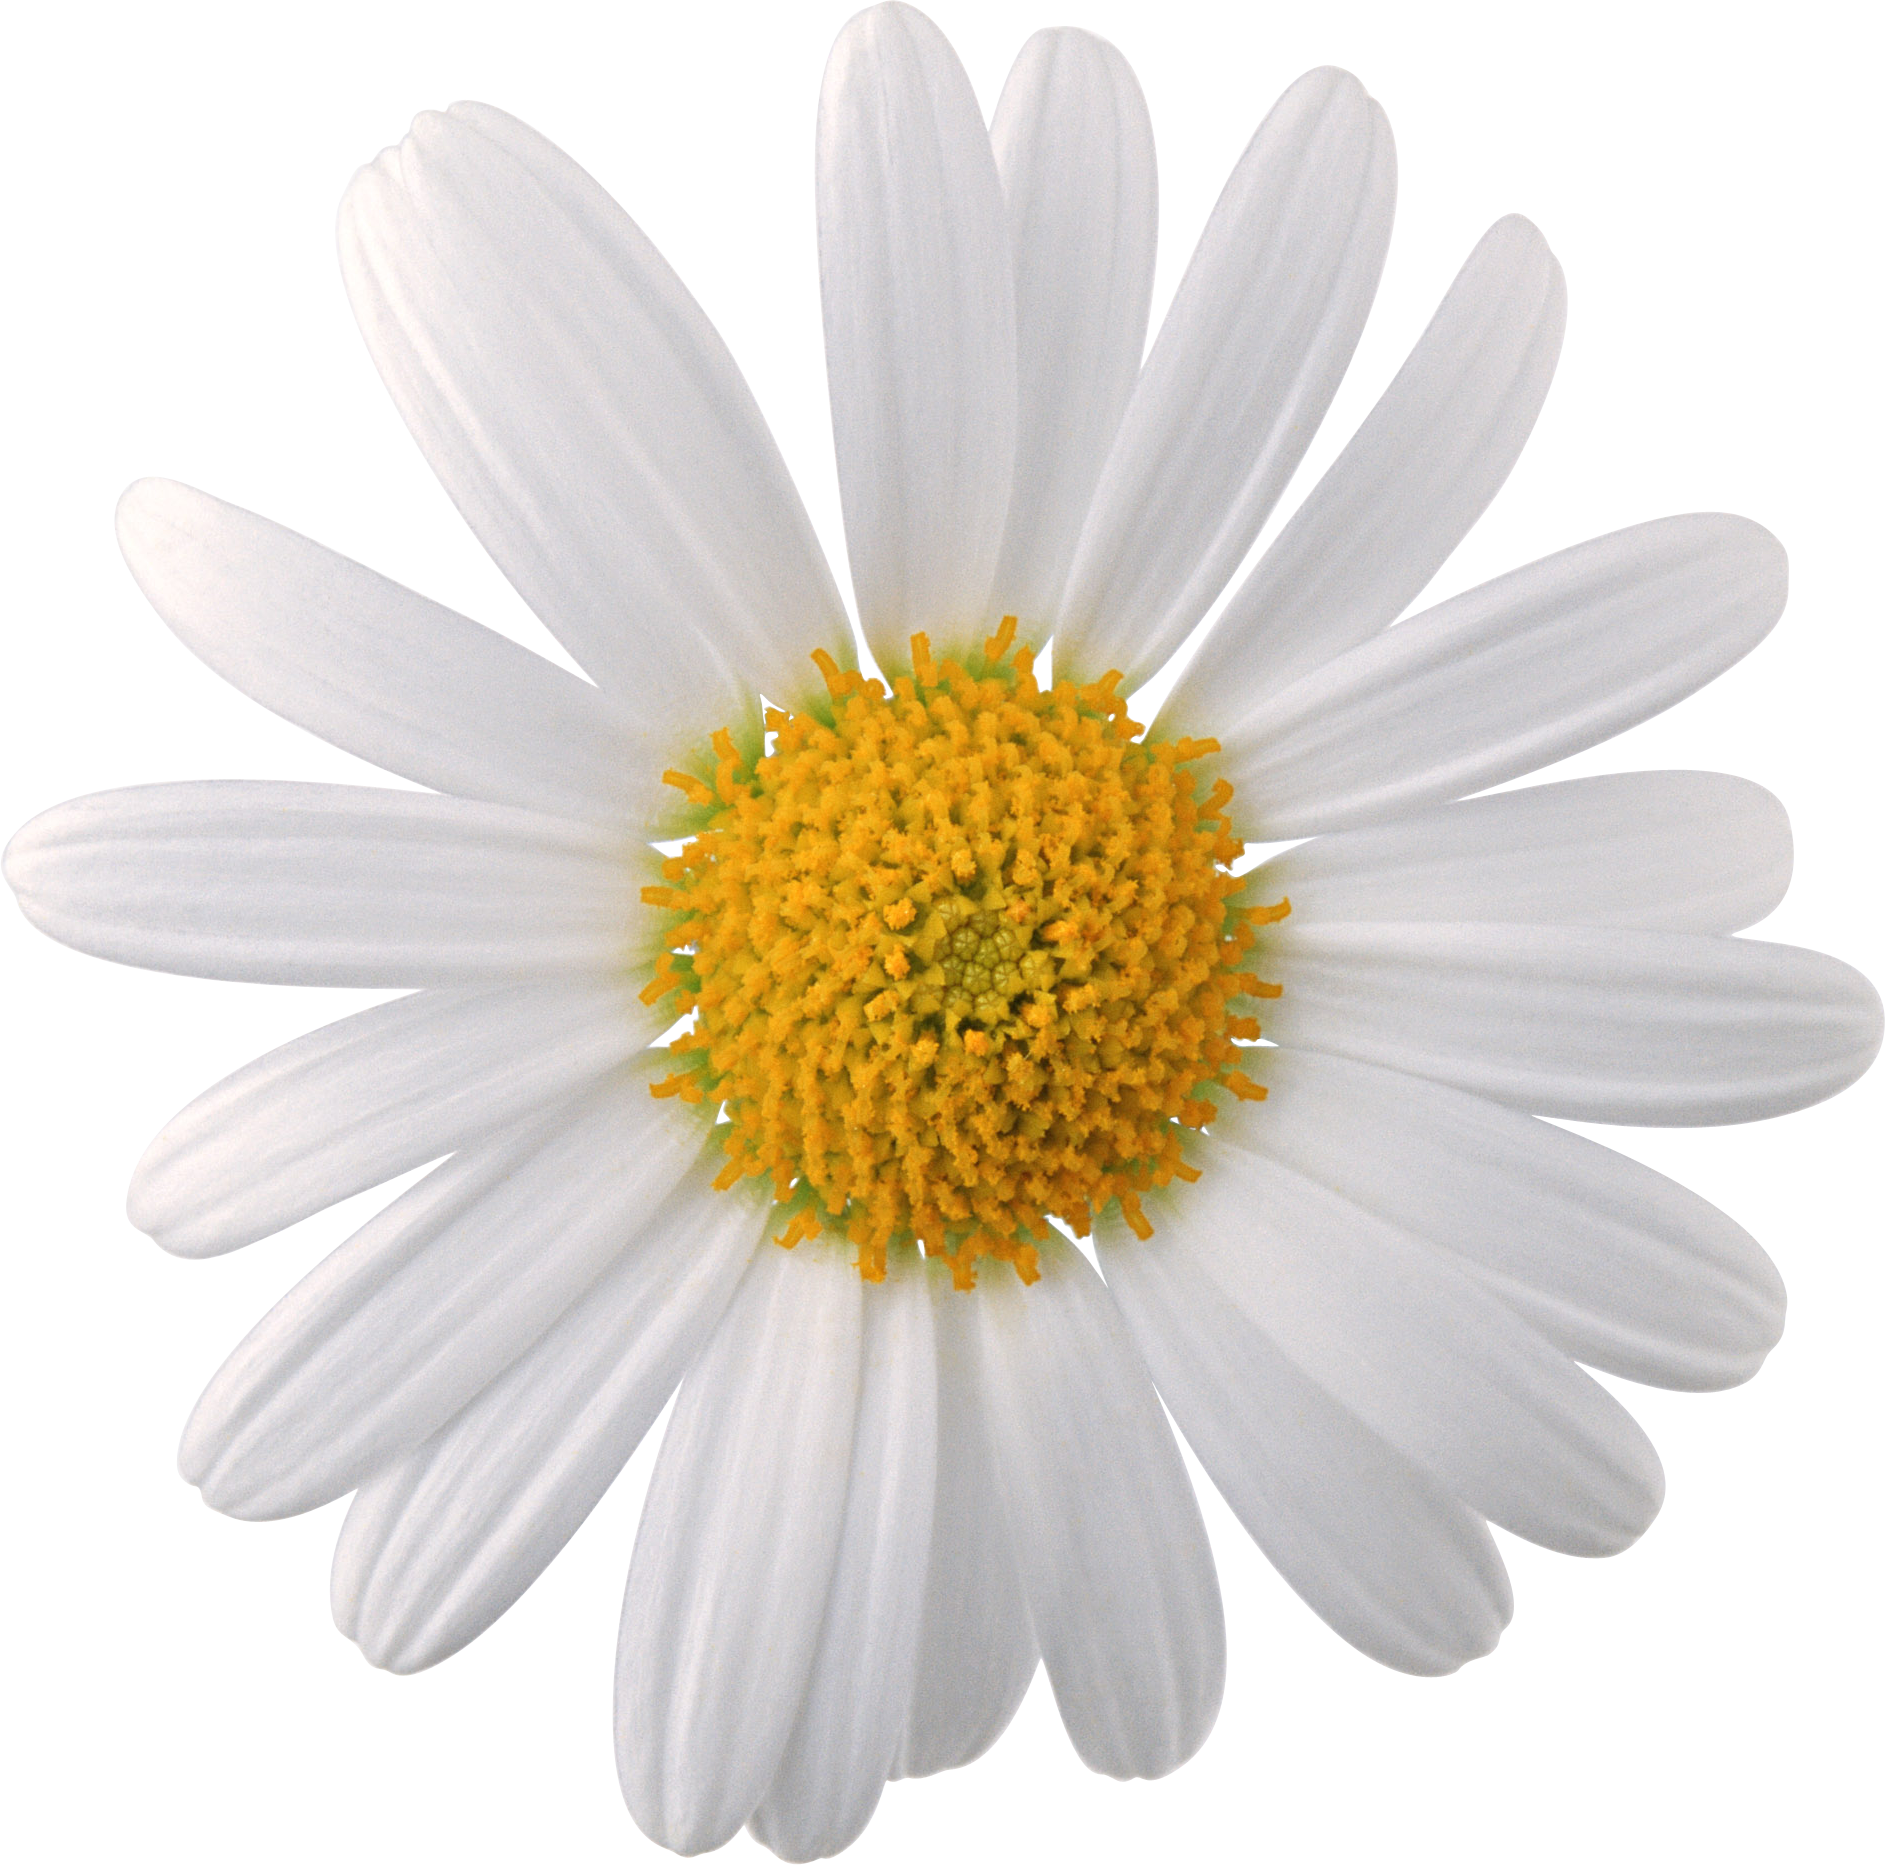 Daisy flower png. Camomile image free picture